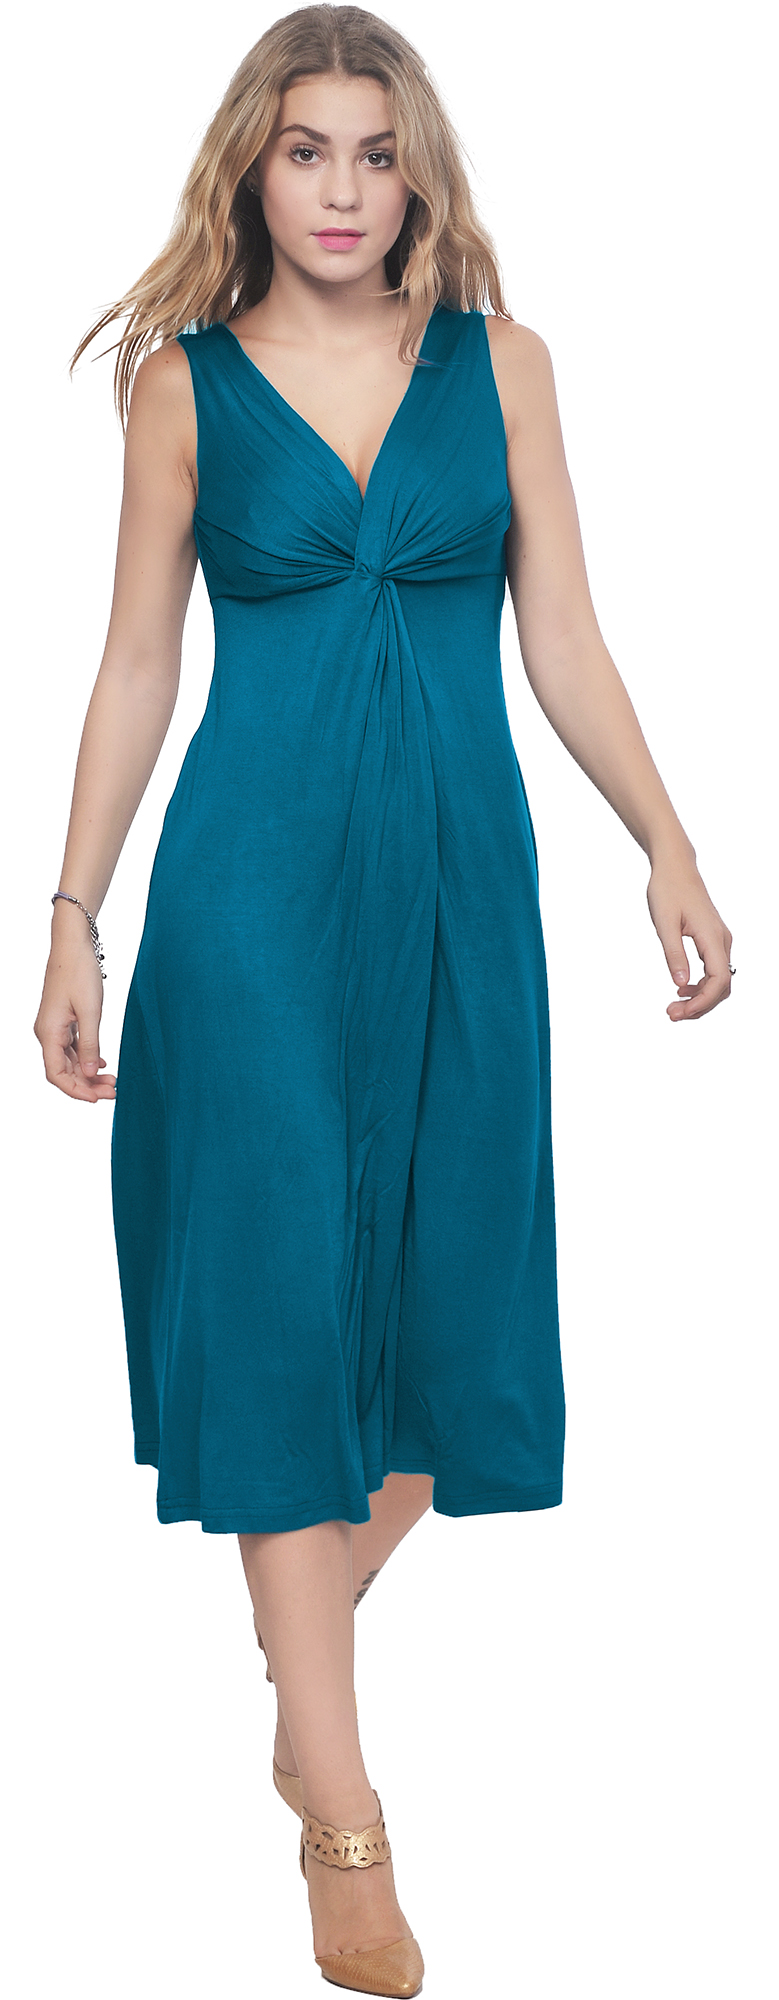 Elegant  By Cynthia Vincent Handkerchief Midi Dress For Women  Booocloth